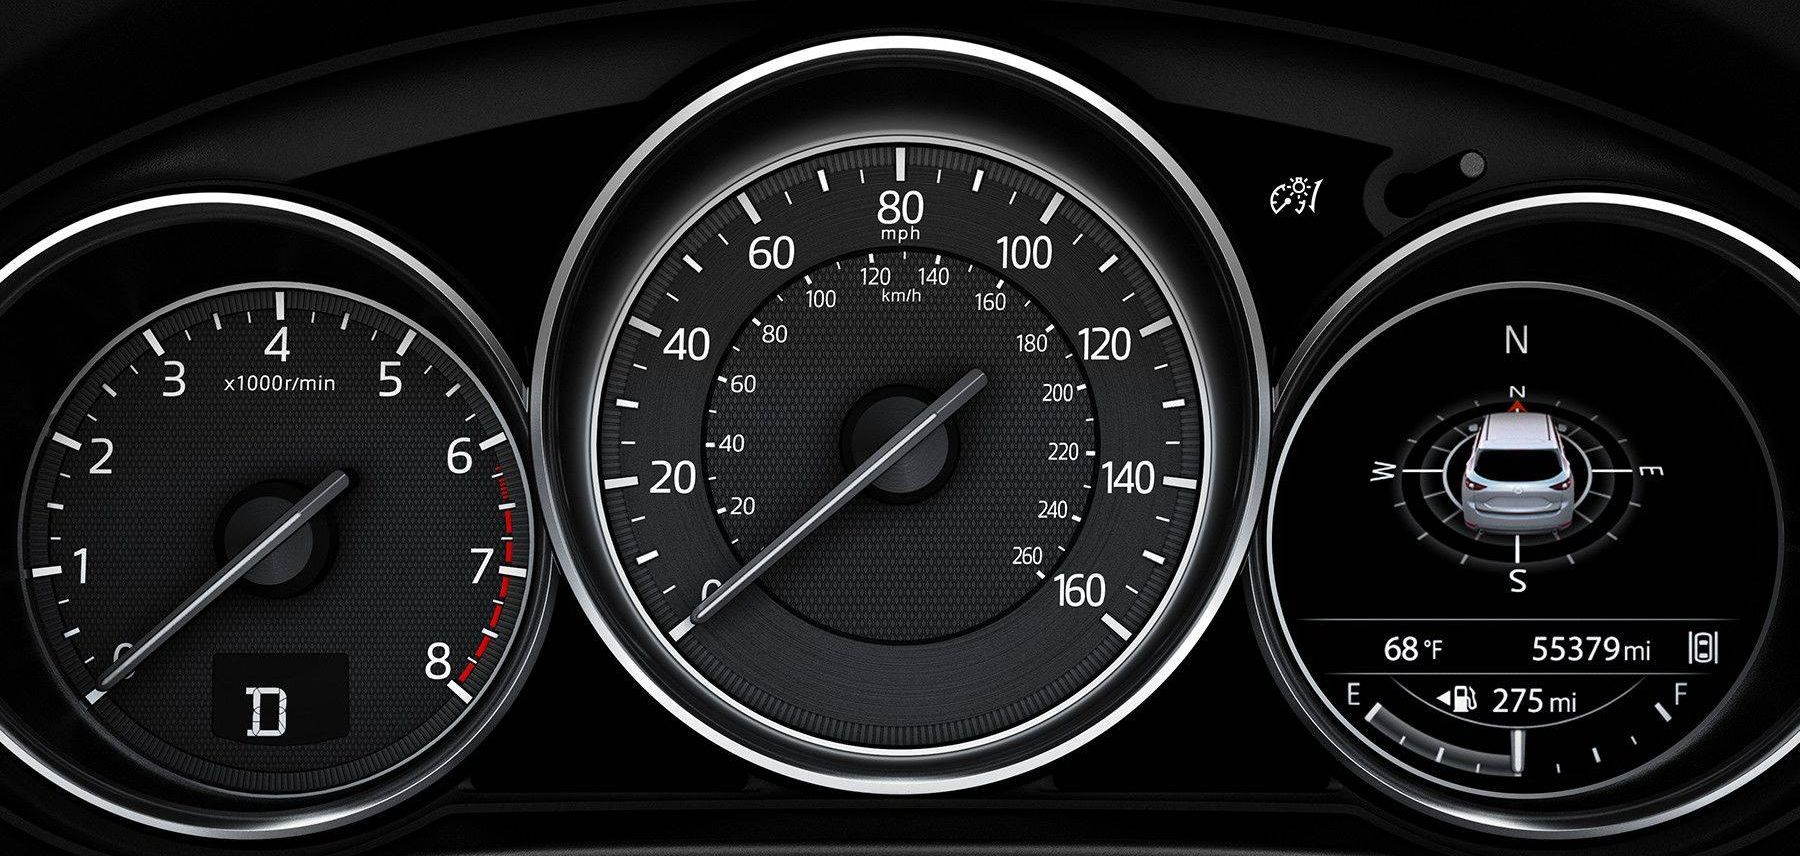 Speedometer in the 2018 Mazda CX-5